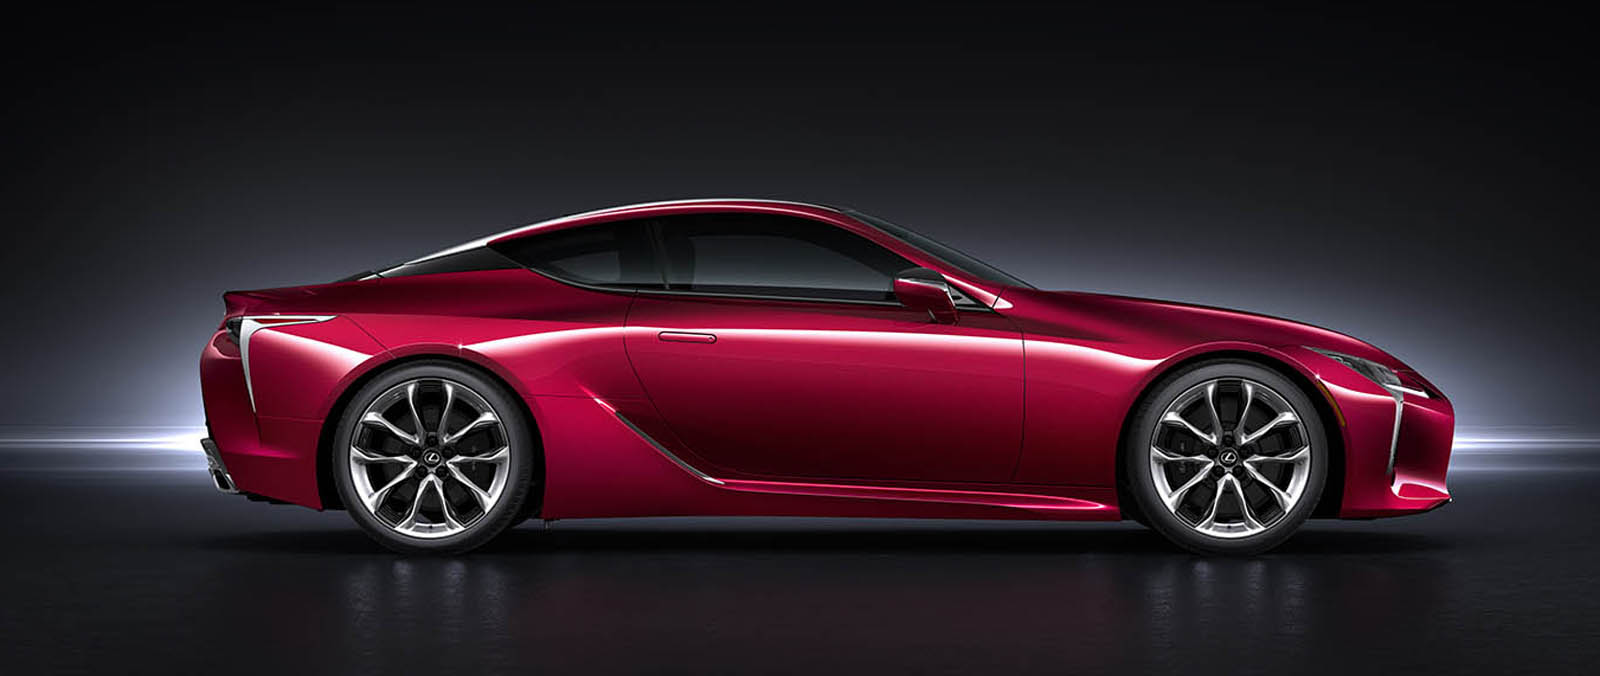 Lexus onthult spectaculaire coupe LC 500